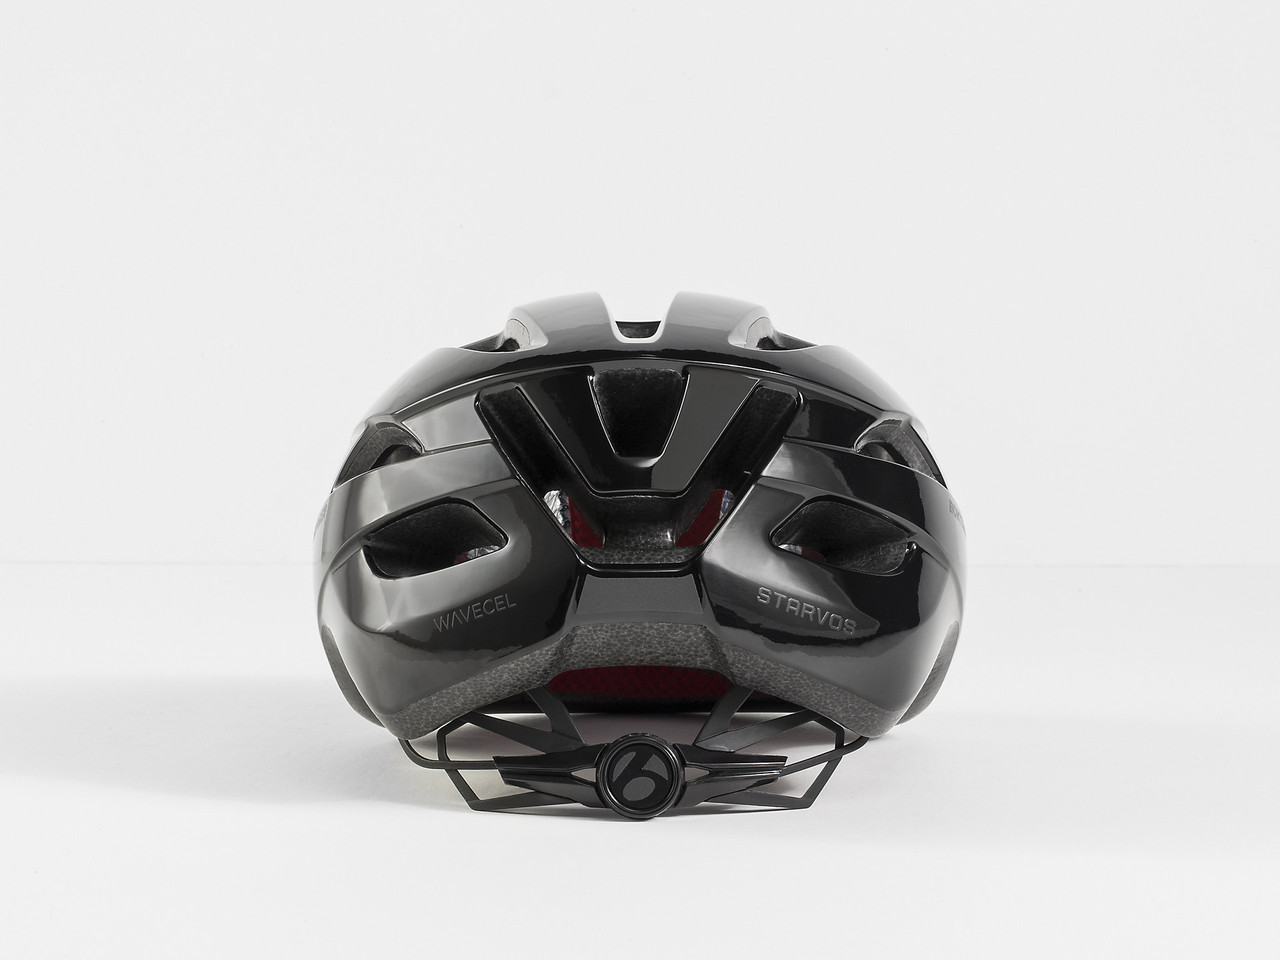 Bontrager Starvos WaveCel Cycling Helmet - Black